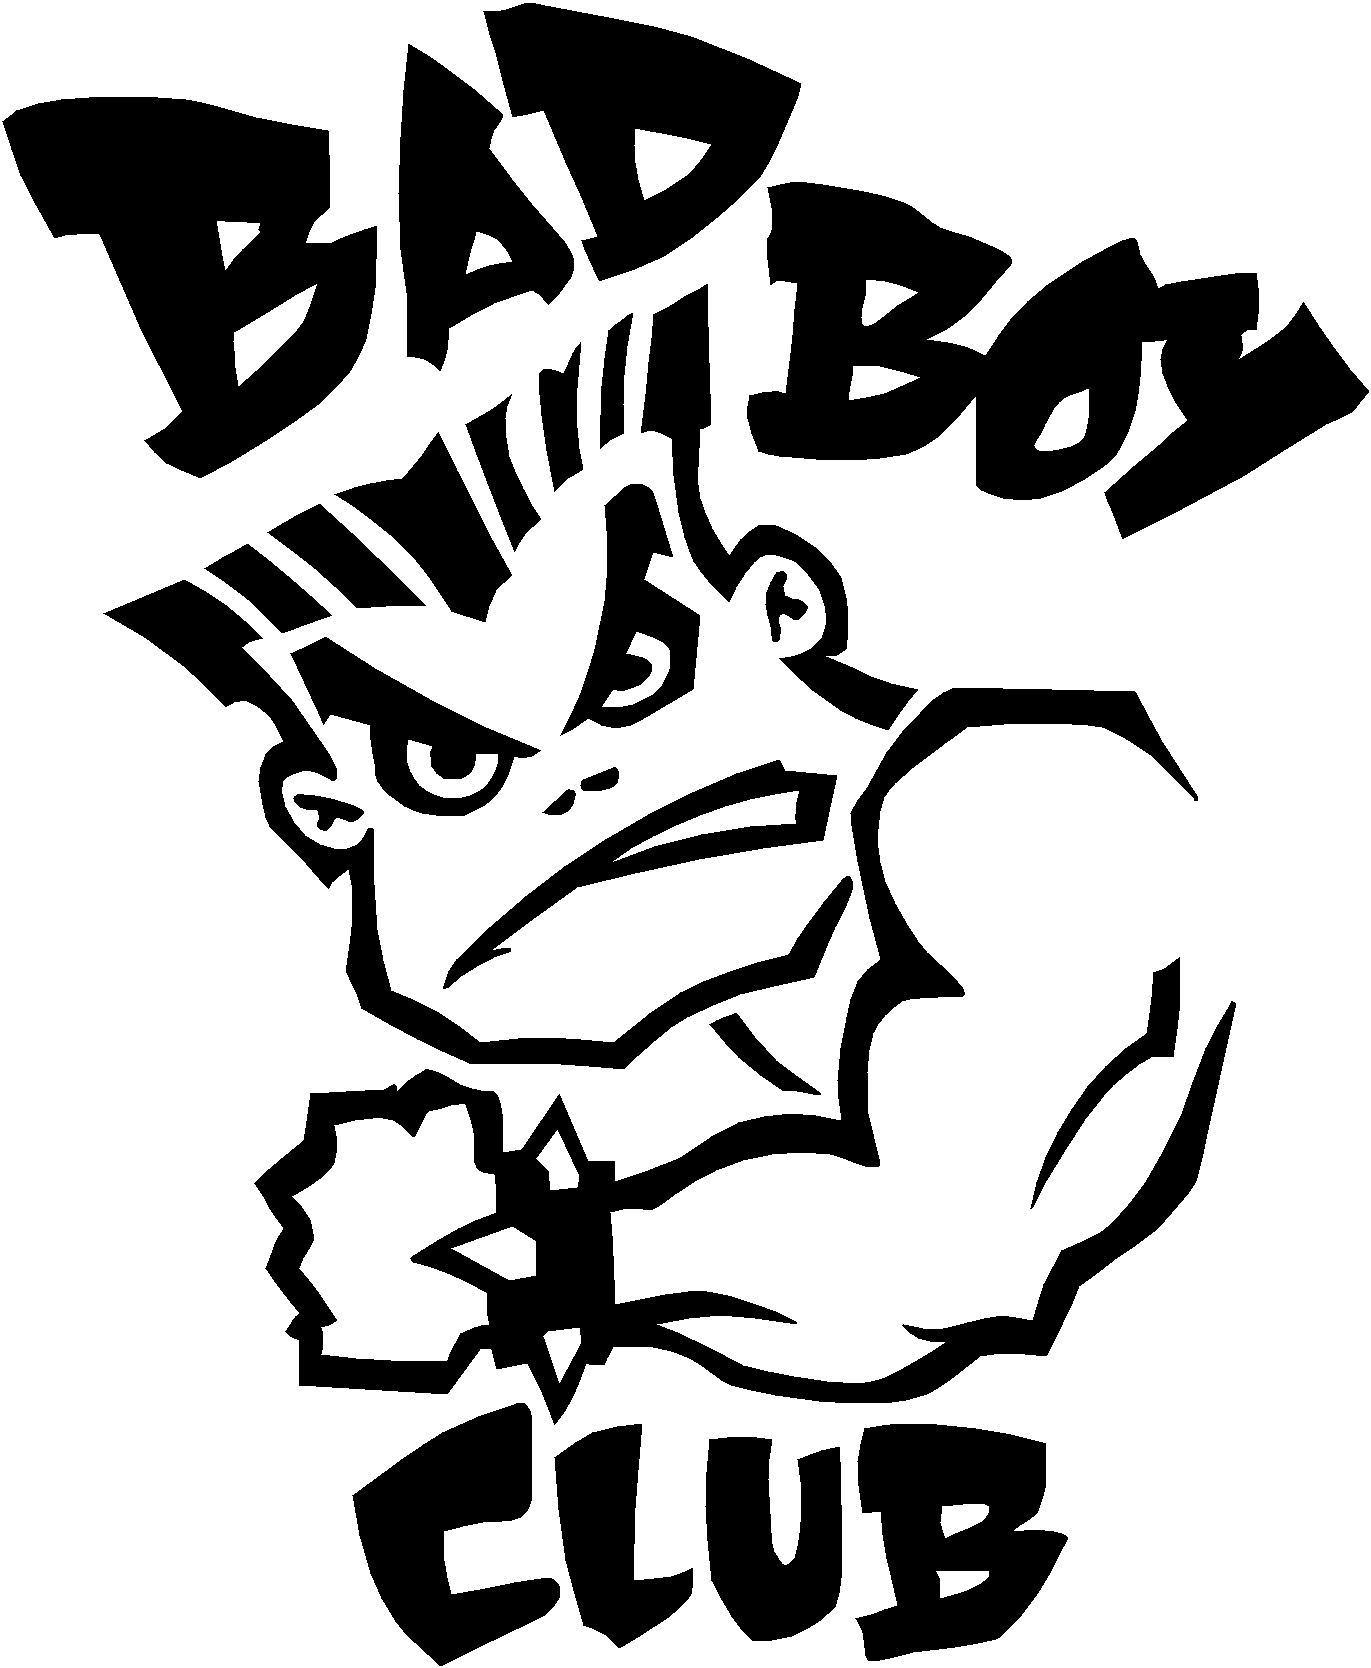 Bad Boy Club Logos